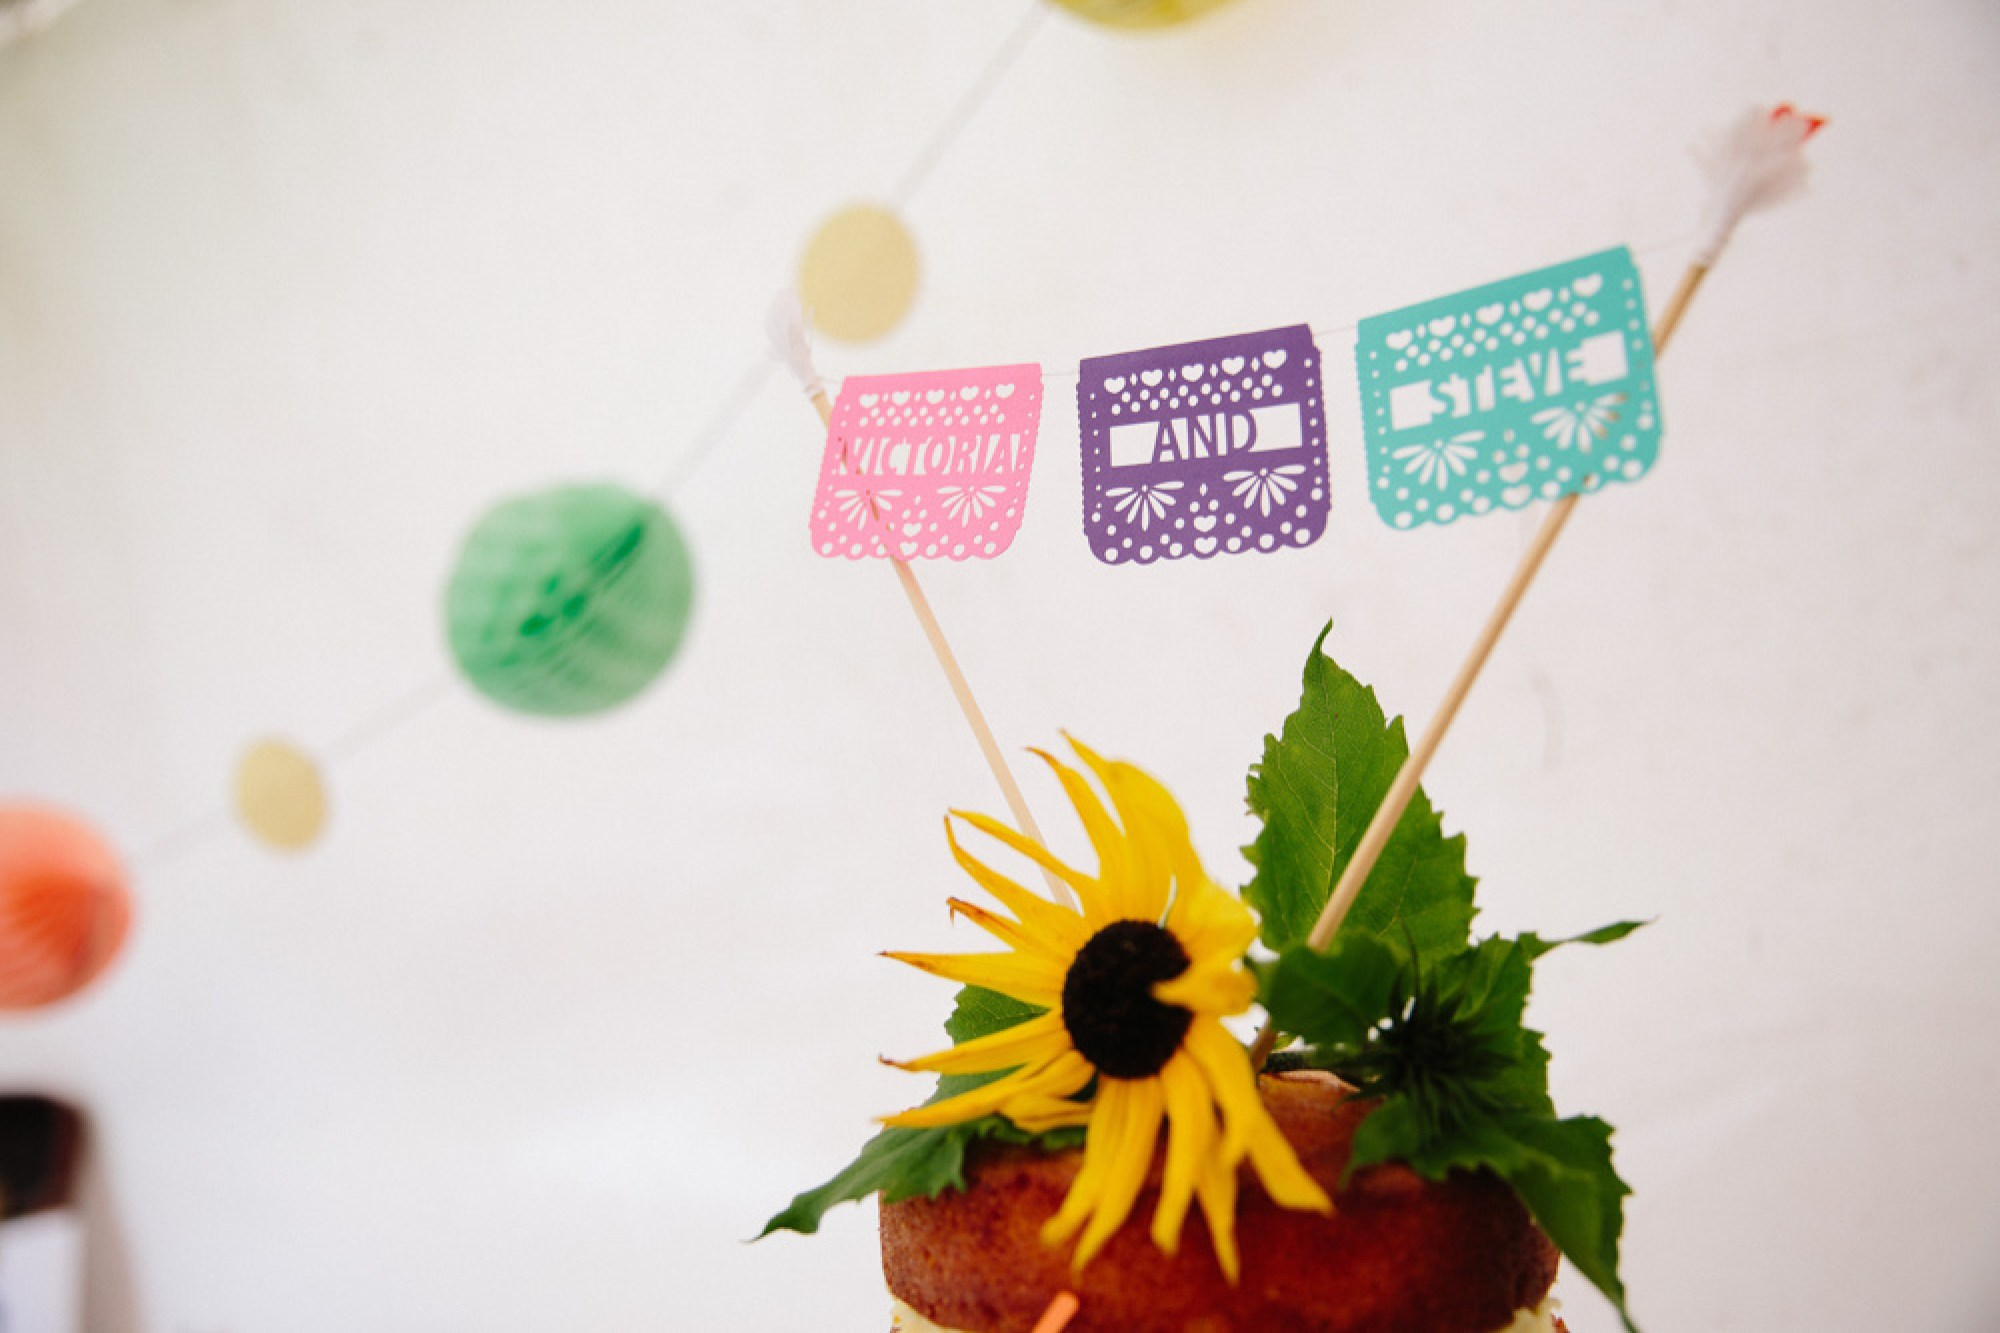 Papel picado cake topper from Etsy